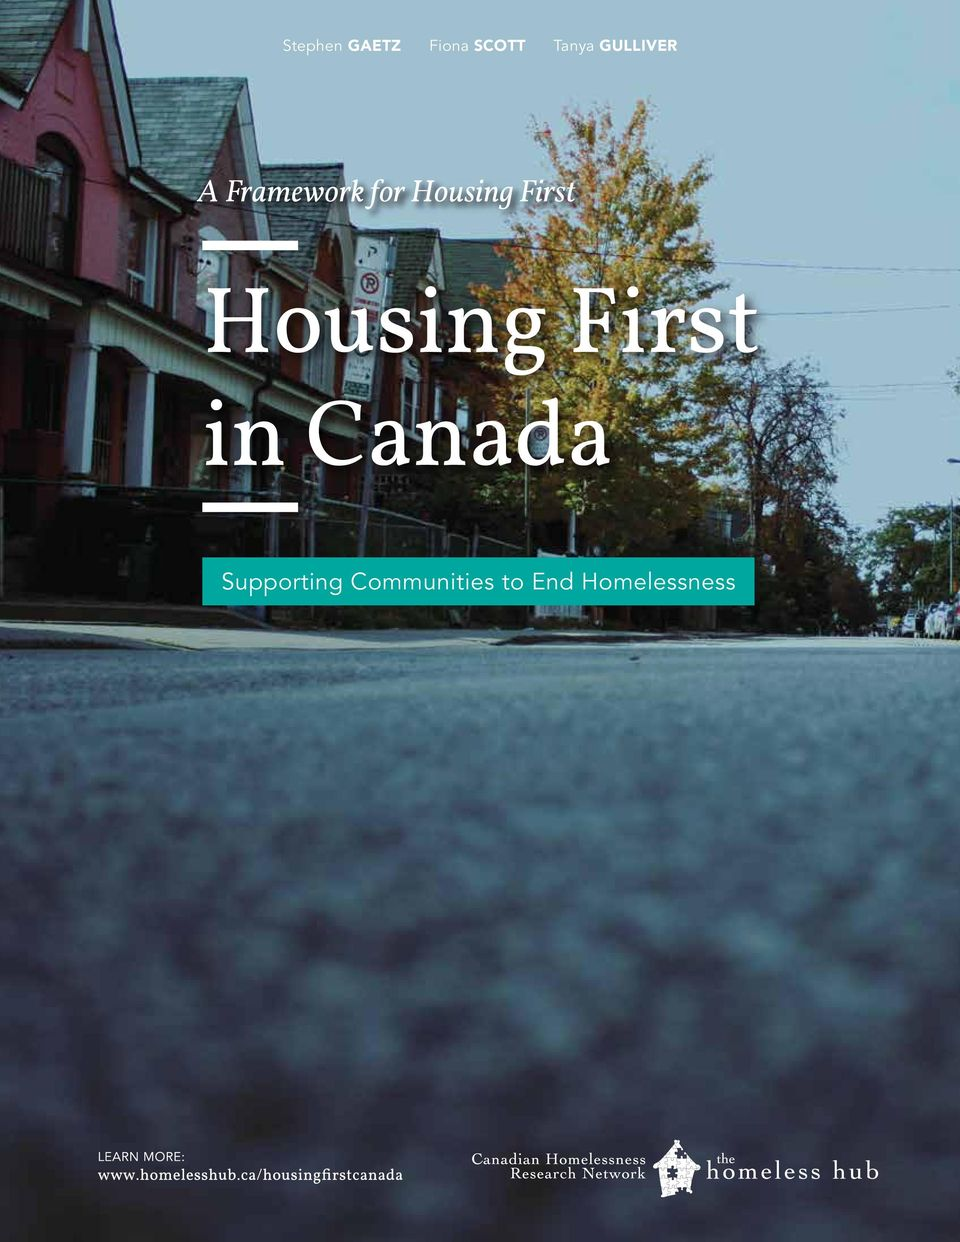 First Housing First in Canada